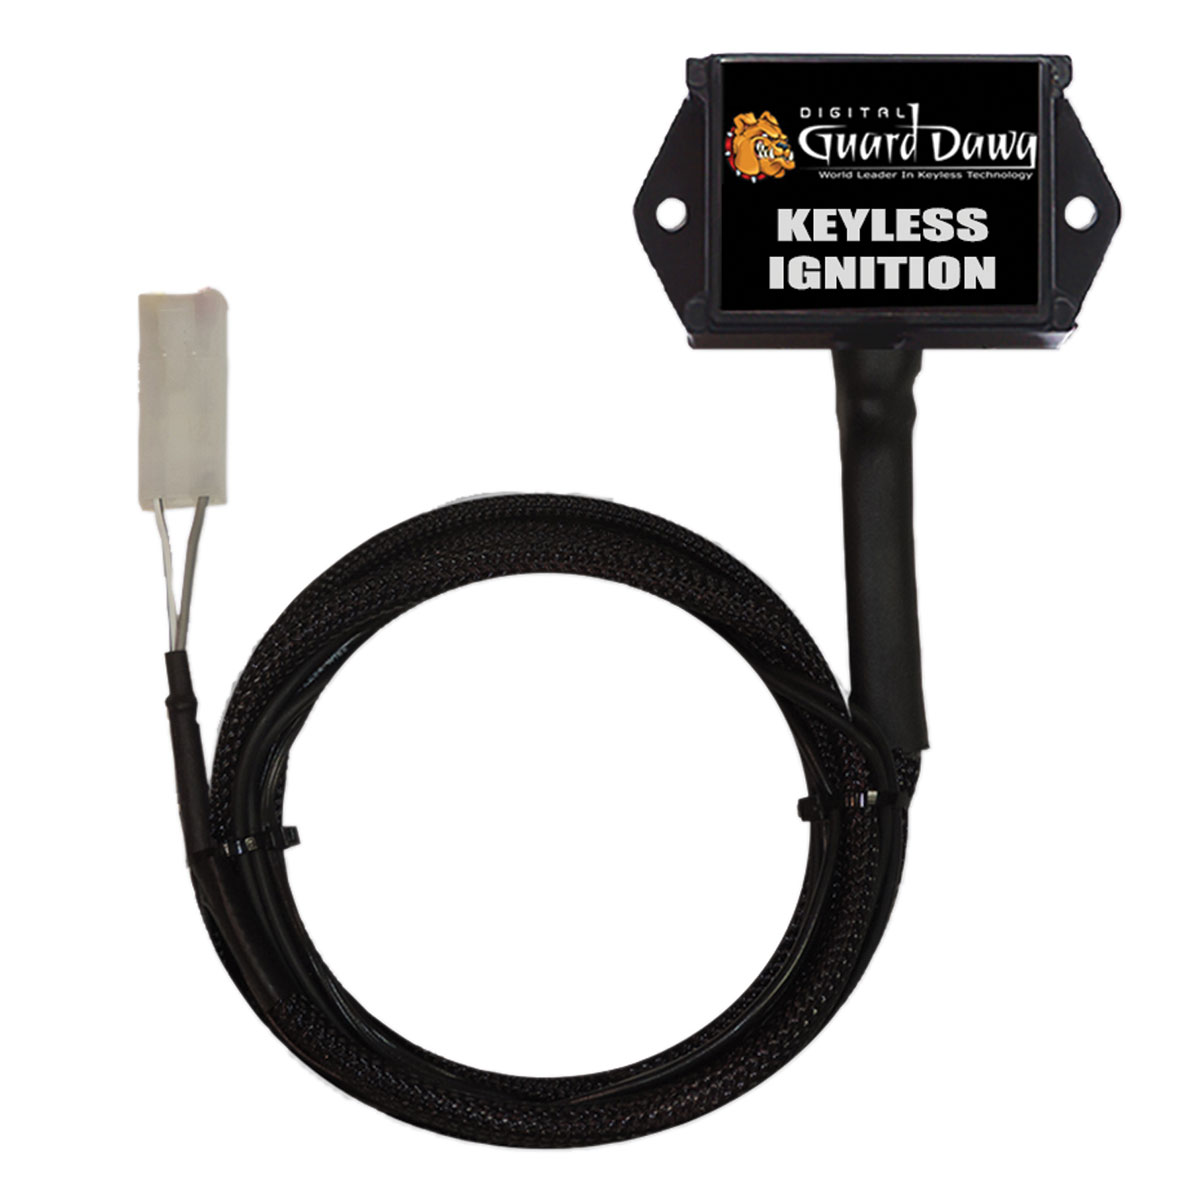 Digital Guard Dawg Plug & Play Keyless Ignition - DGD-KIM-P